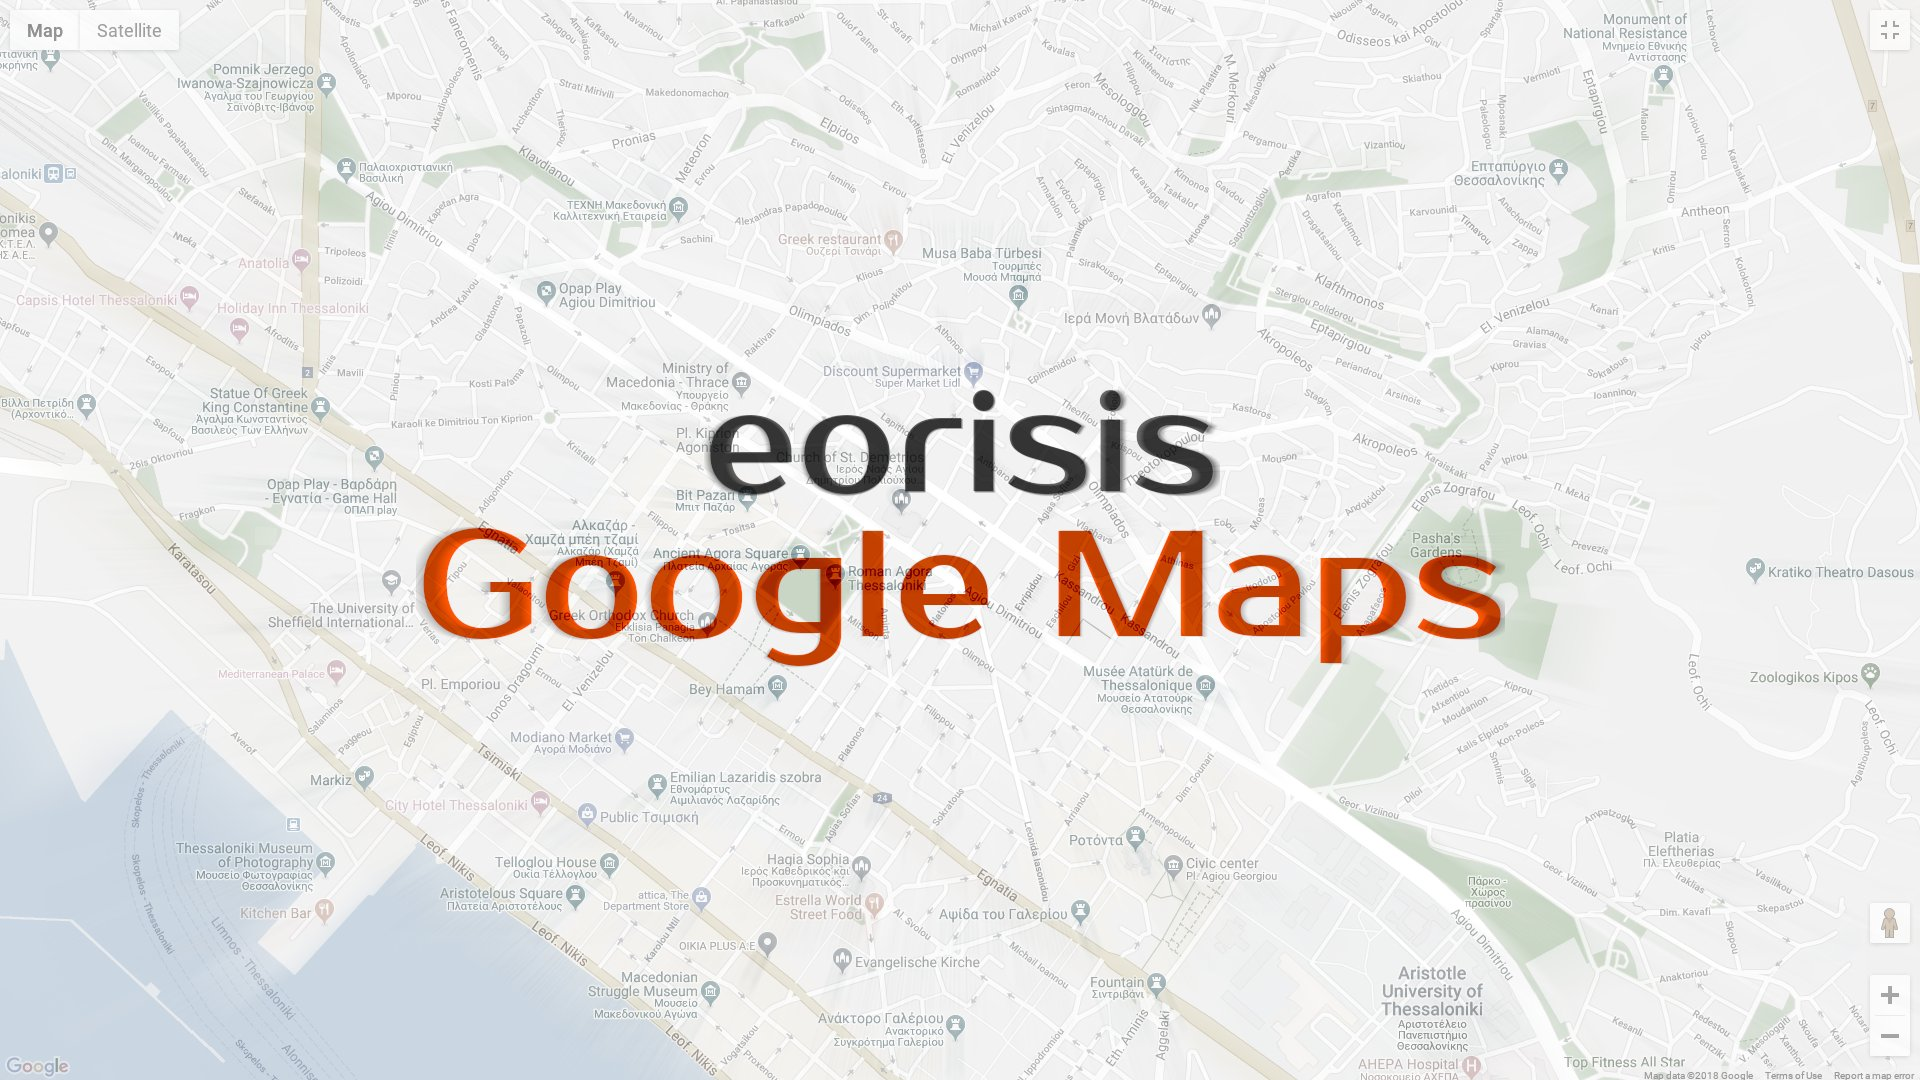 Eorisis Google Maps Documentation Eorisis Diadiktyakes